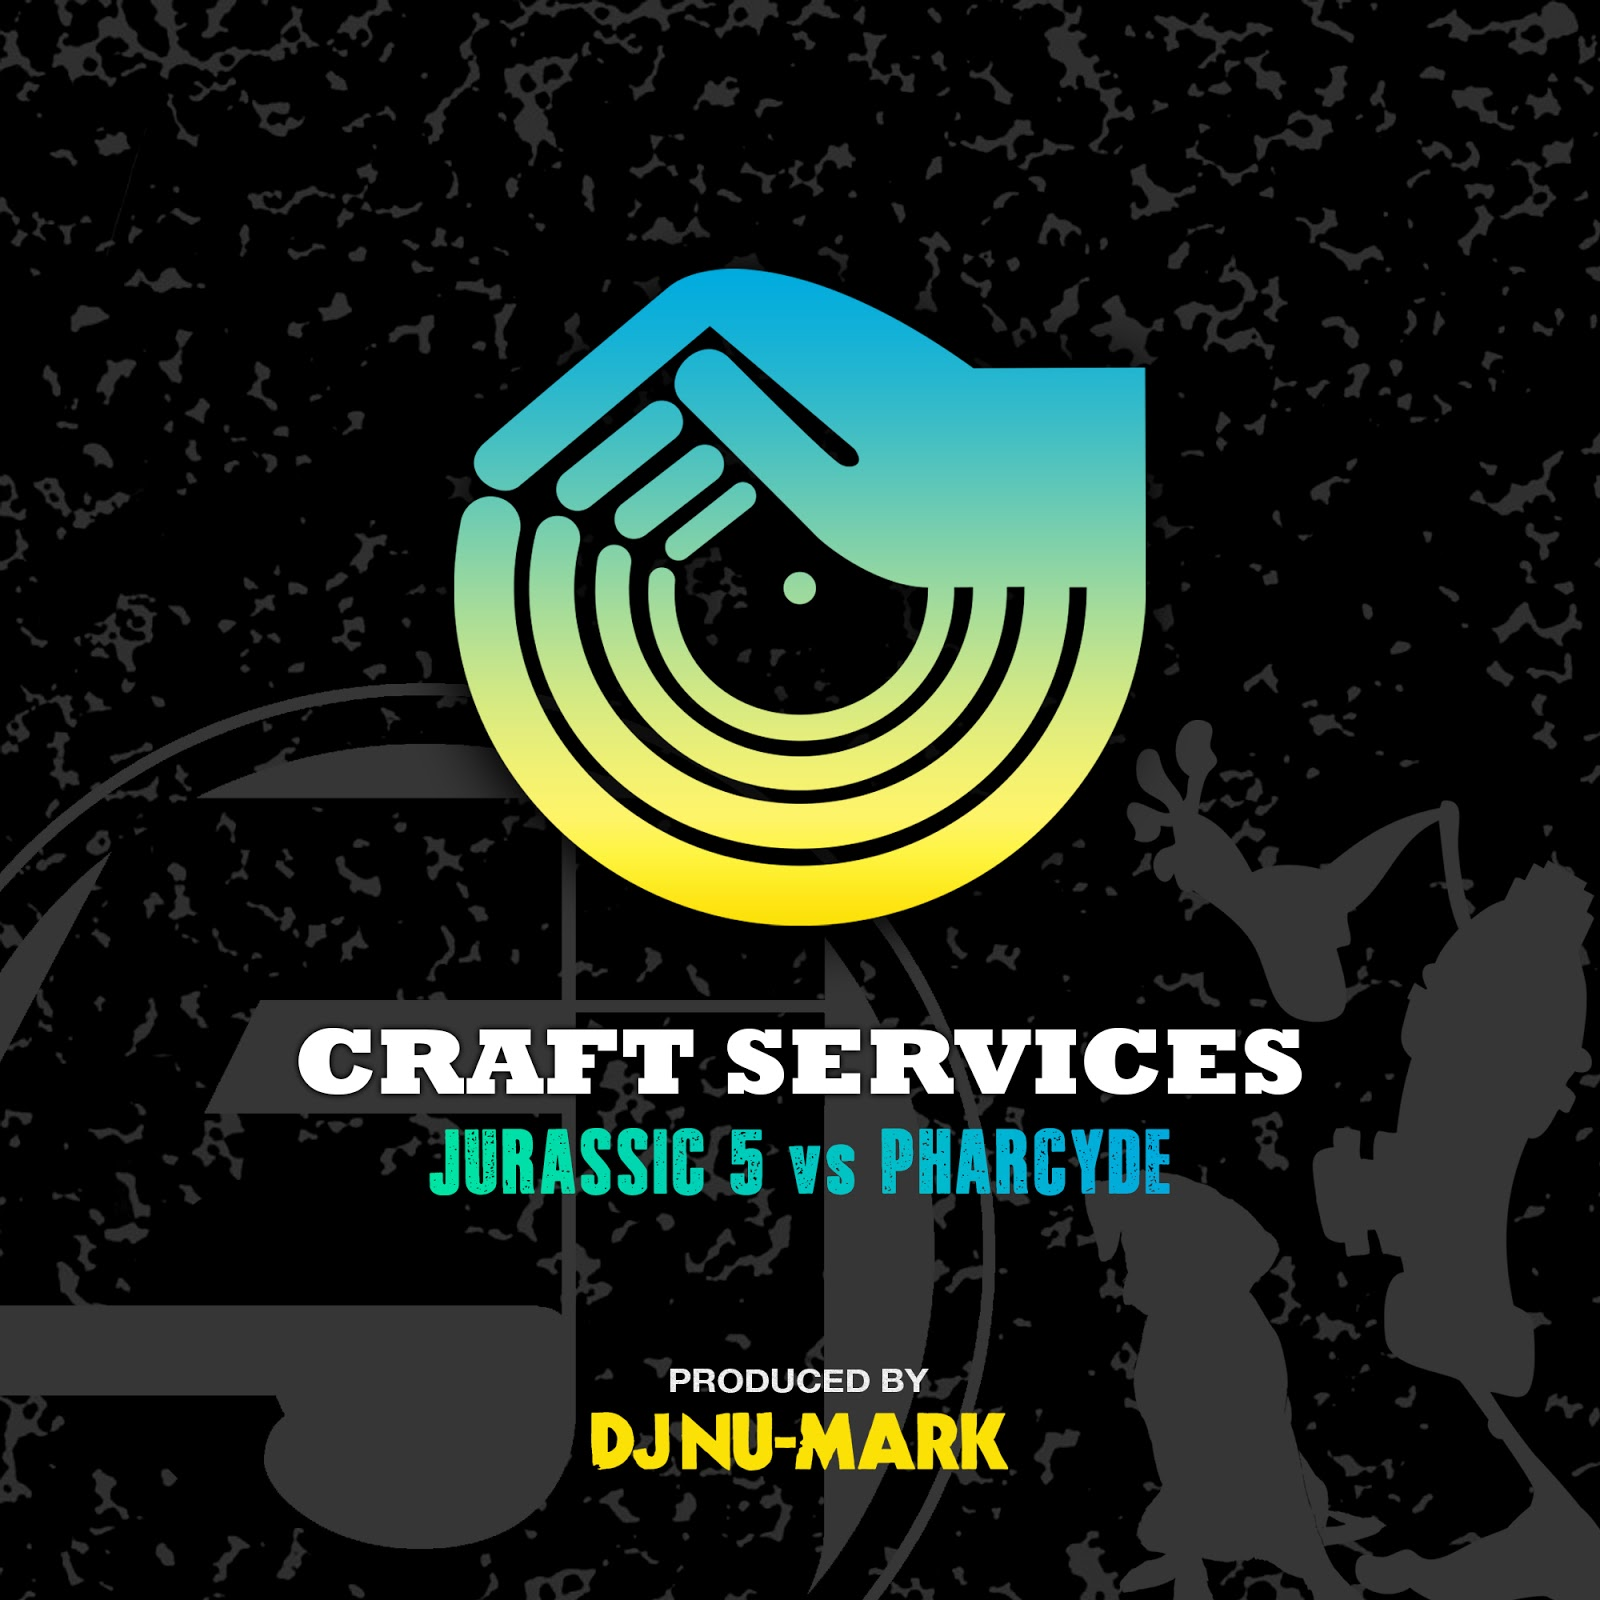 DJ Nu-Mark - Craft Services: Jurassic 5 vs The Pharcyde | Mixtape (Free Download Link)